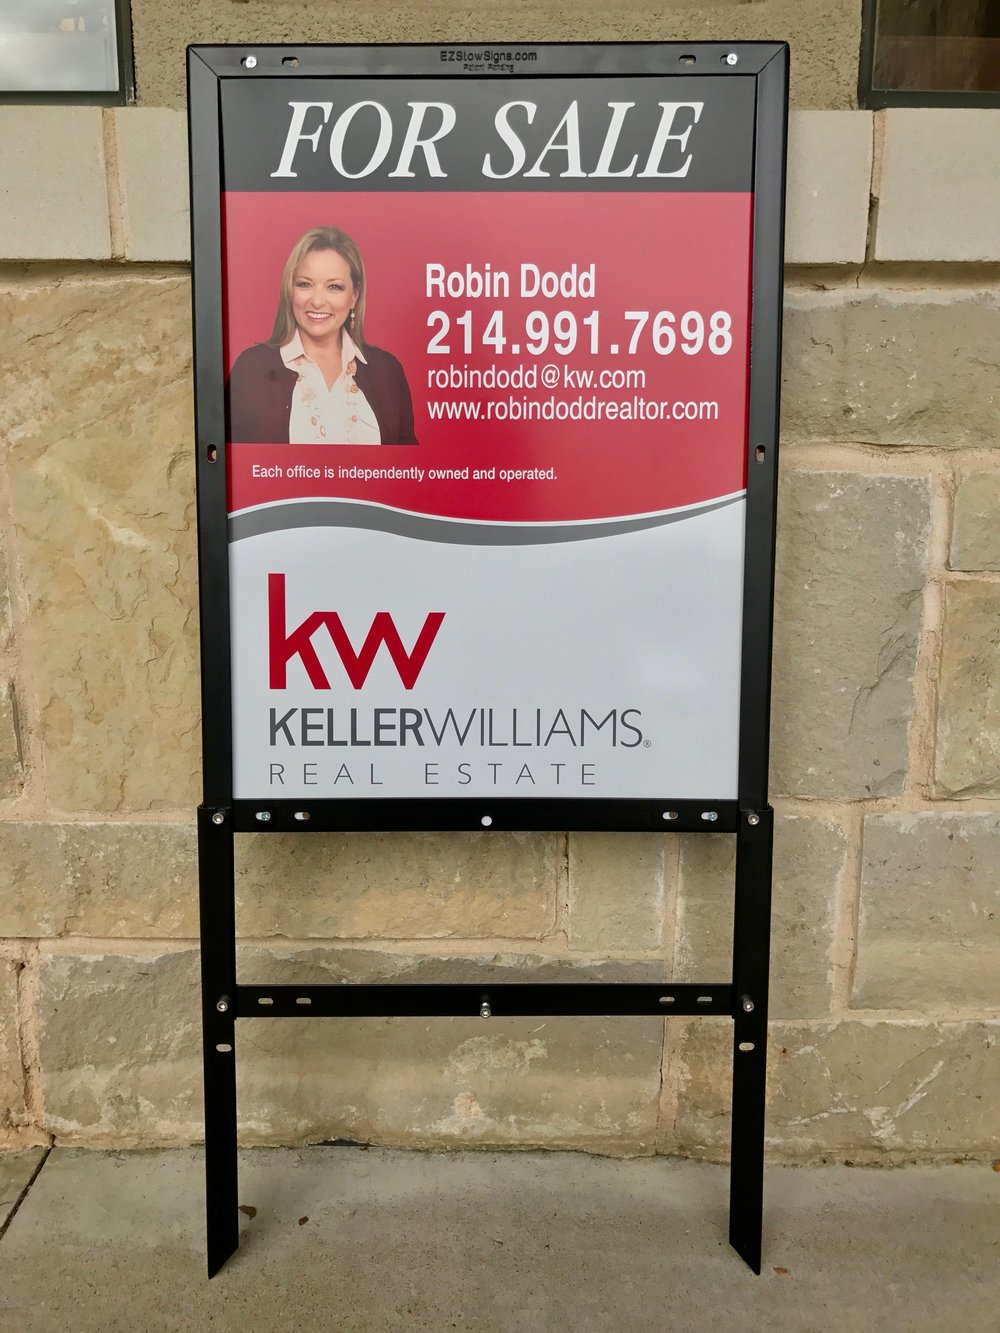 Keller Williams Realty 24%22 x 18%22 Panel & EZ Frame (2).jpeg